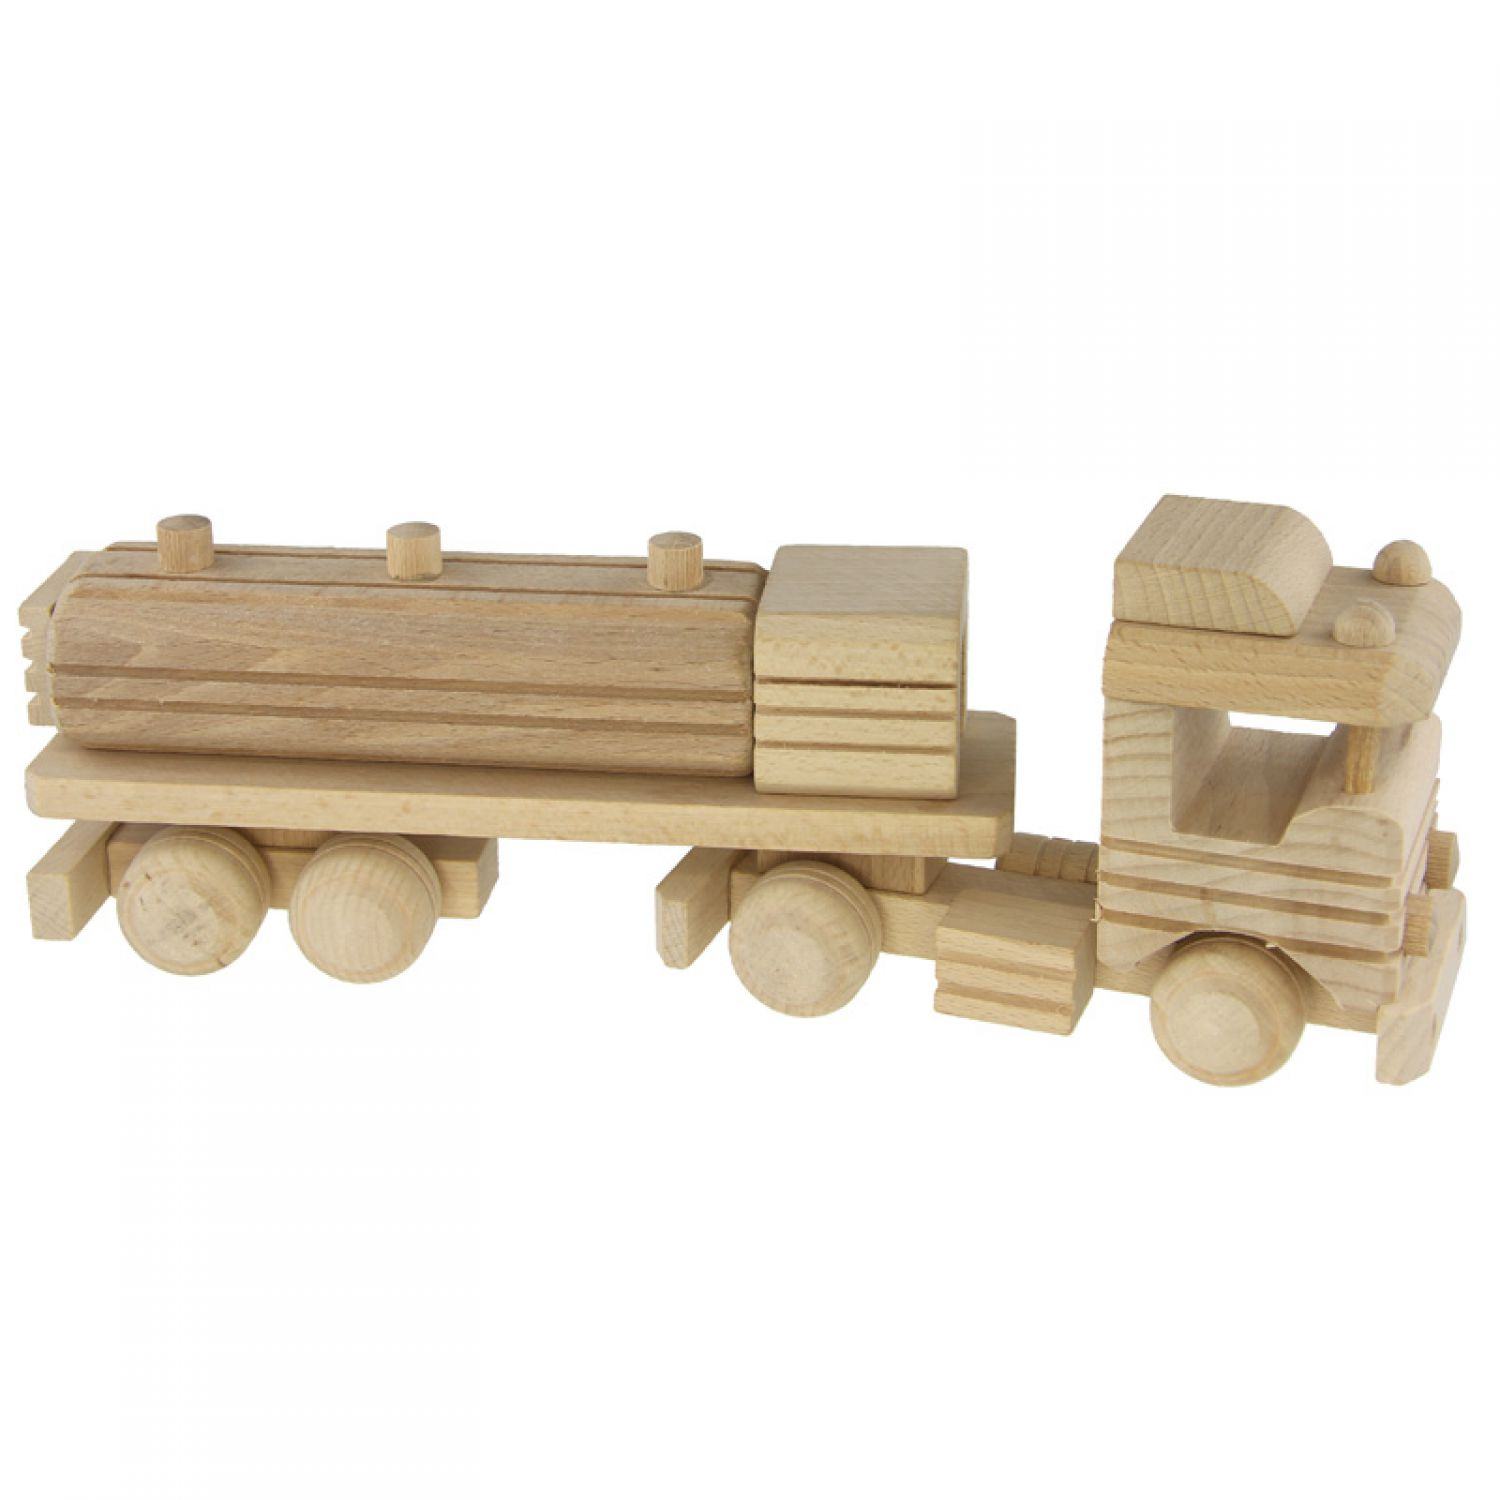 kinderspielzeug aus holz tankwagen 29x11cm spielzeug holzspielzeug geschenkidee ebay. Black Bedroom Furniture Sets. Home Design Ideas